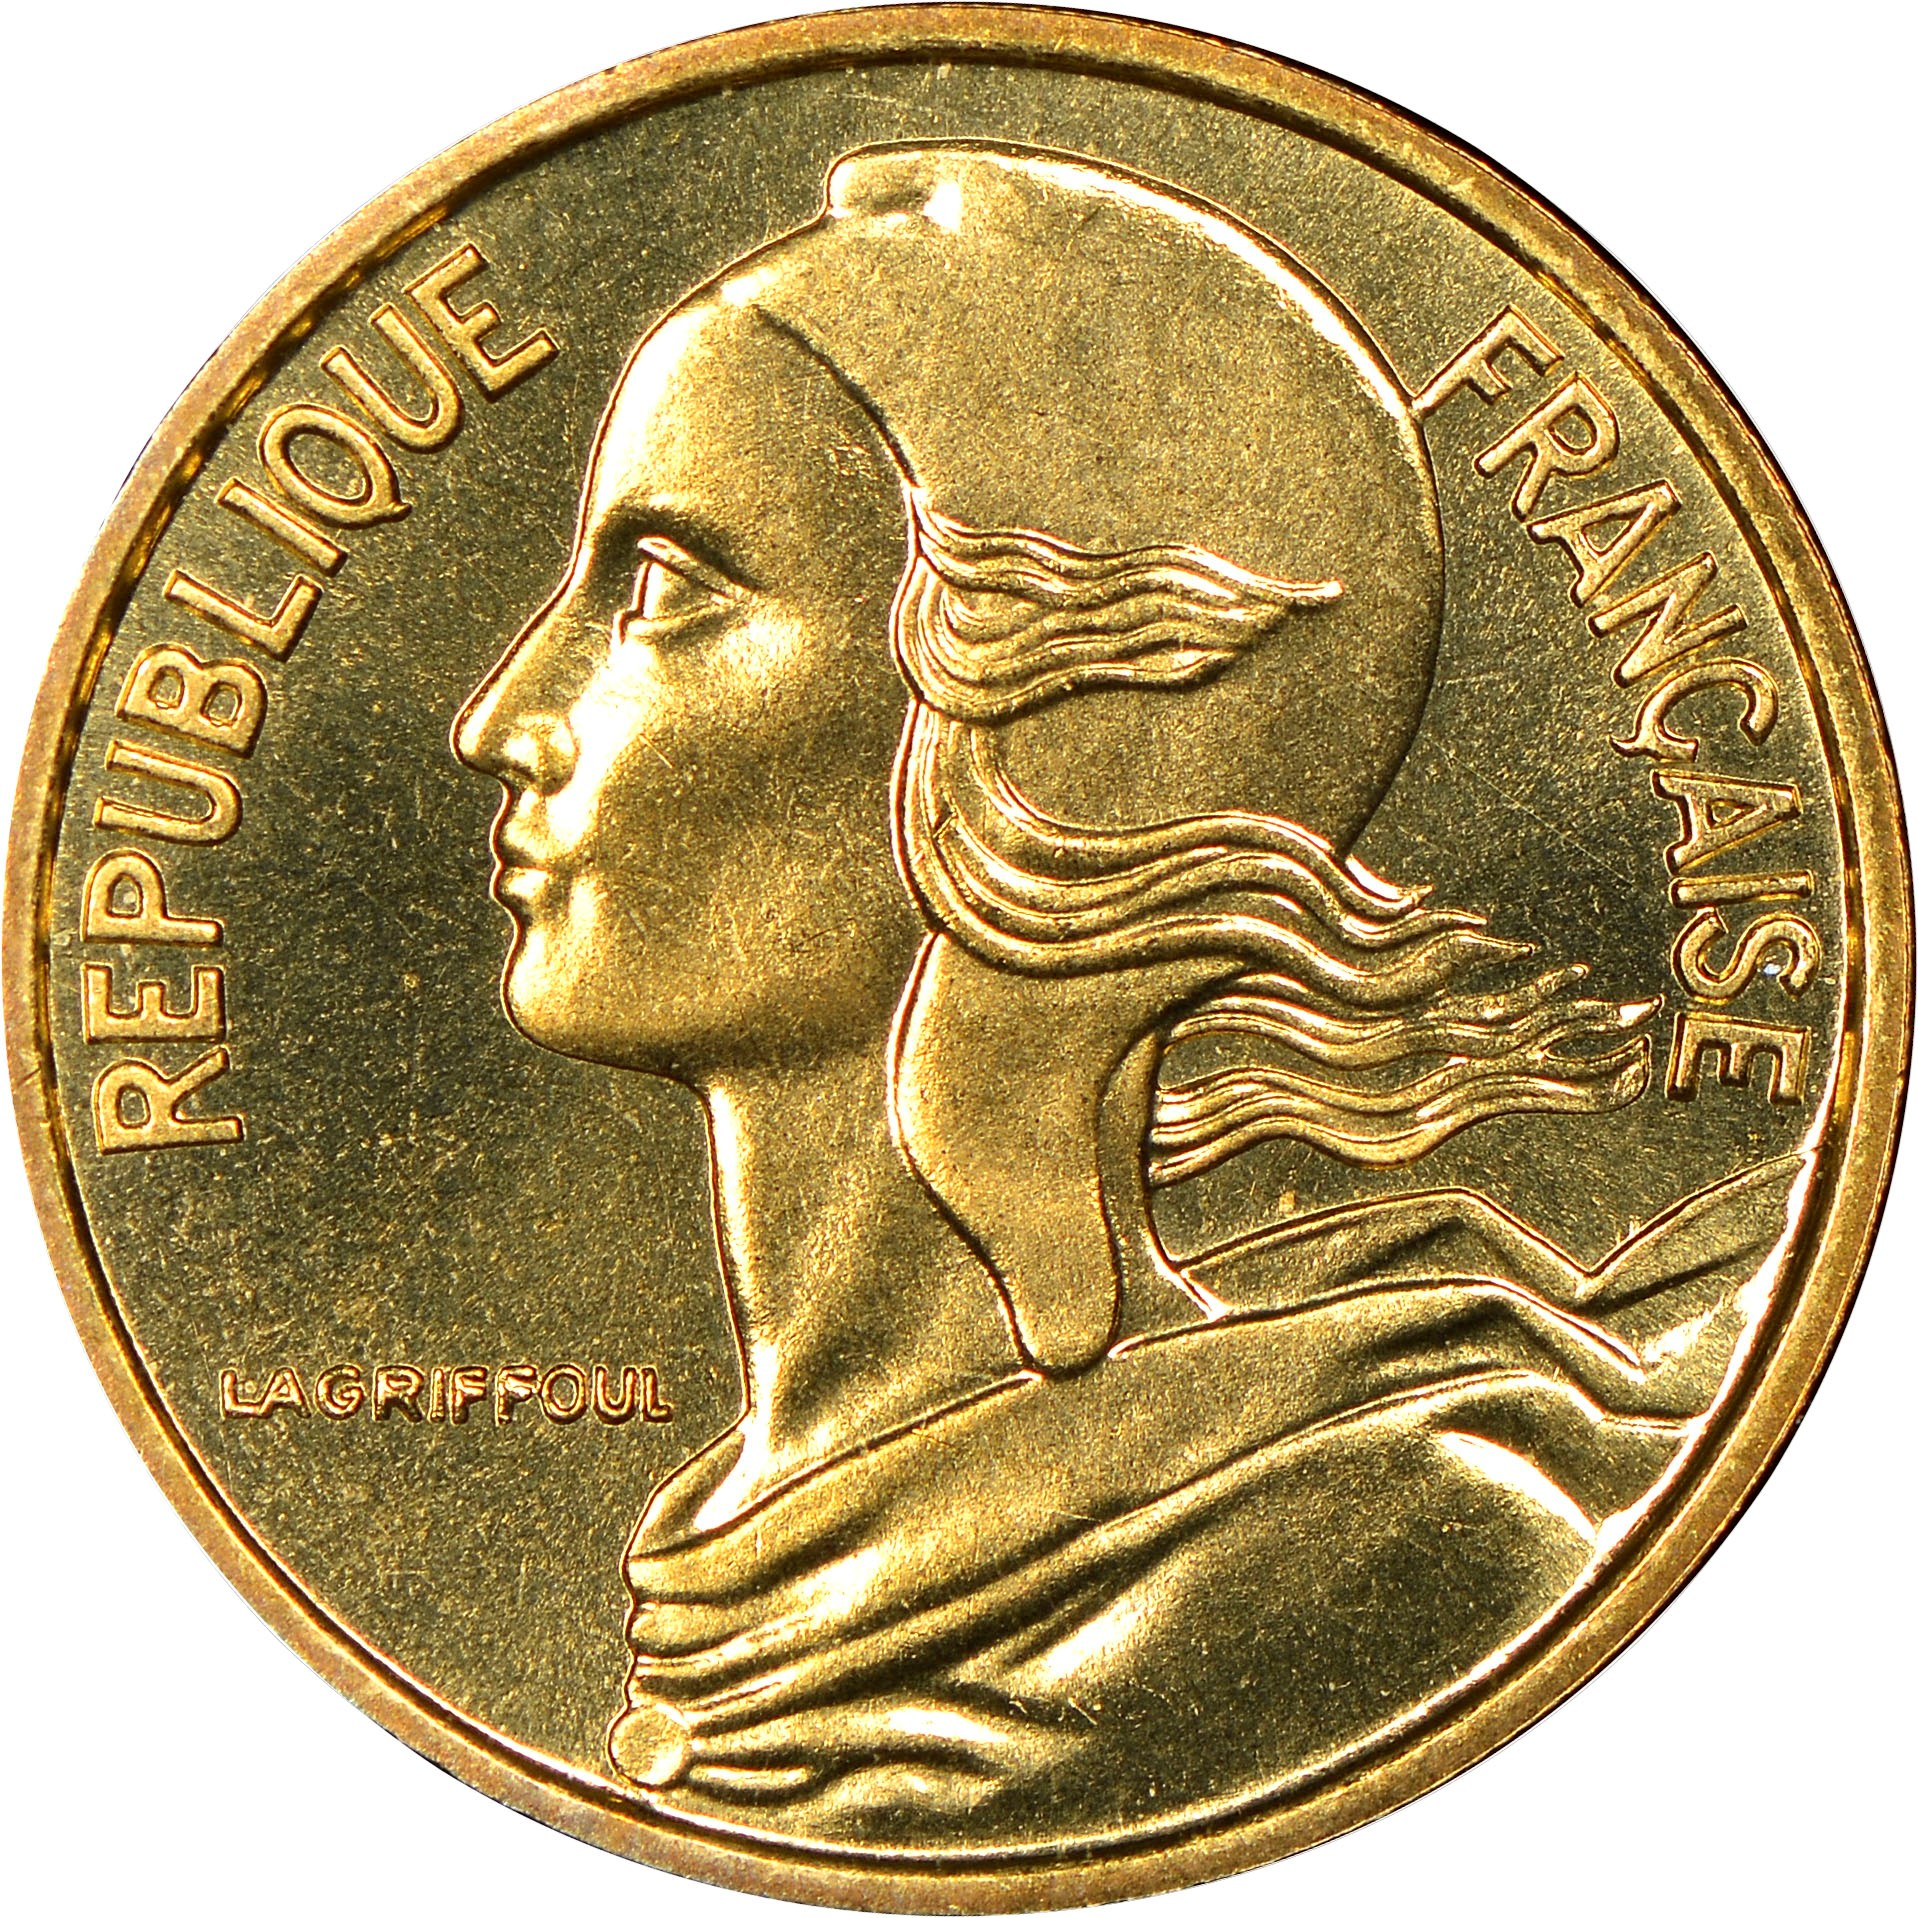 011246259cd6 France 5 Centimes KM 933 Prices   Values